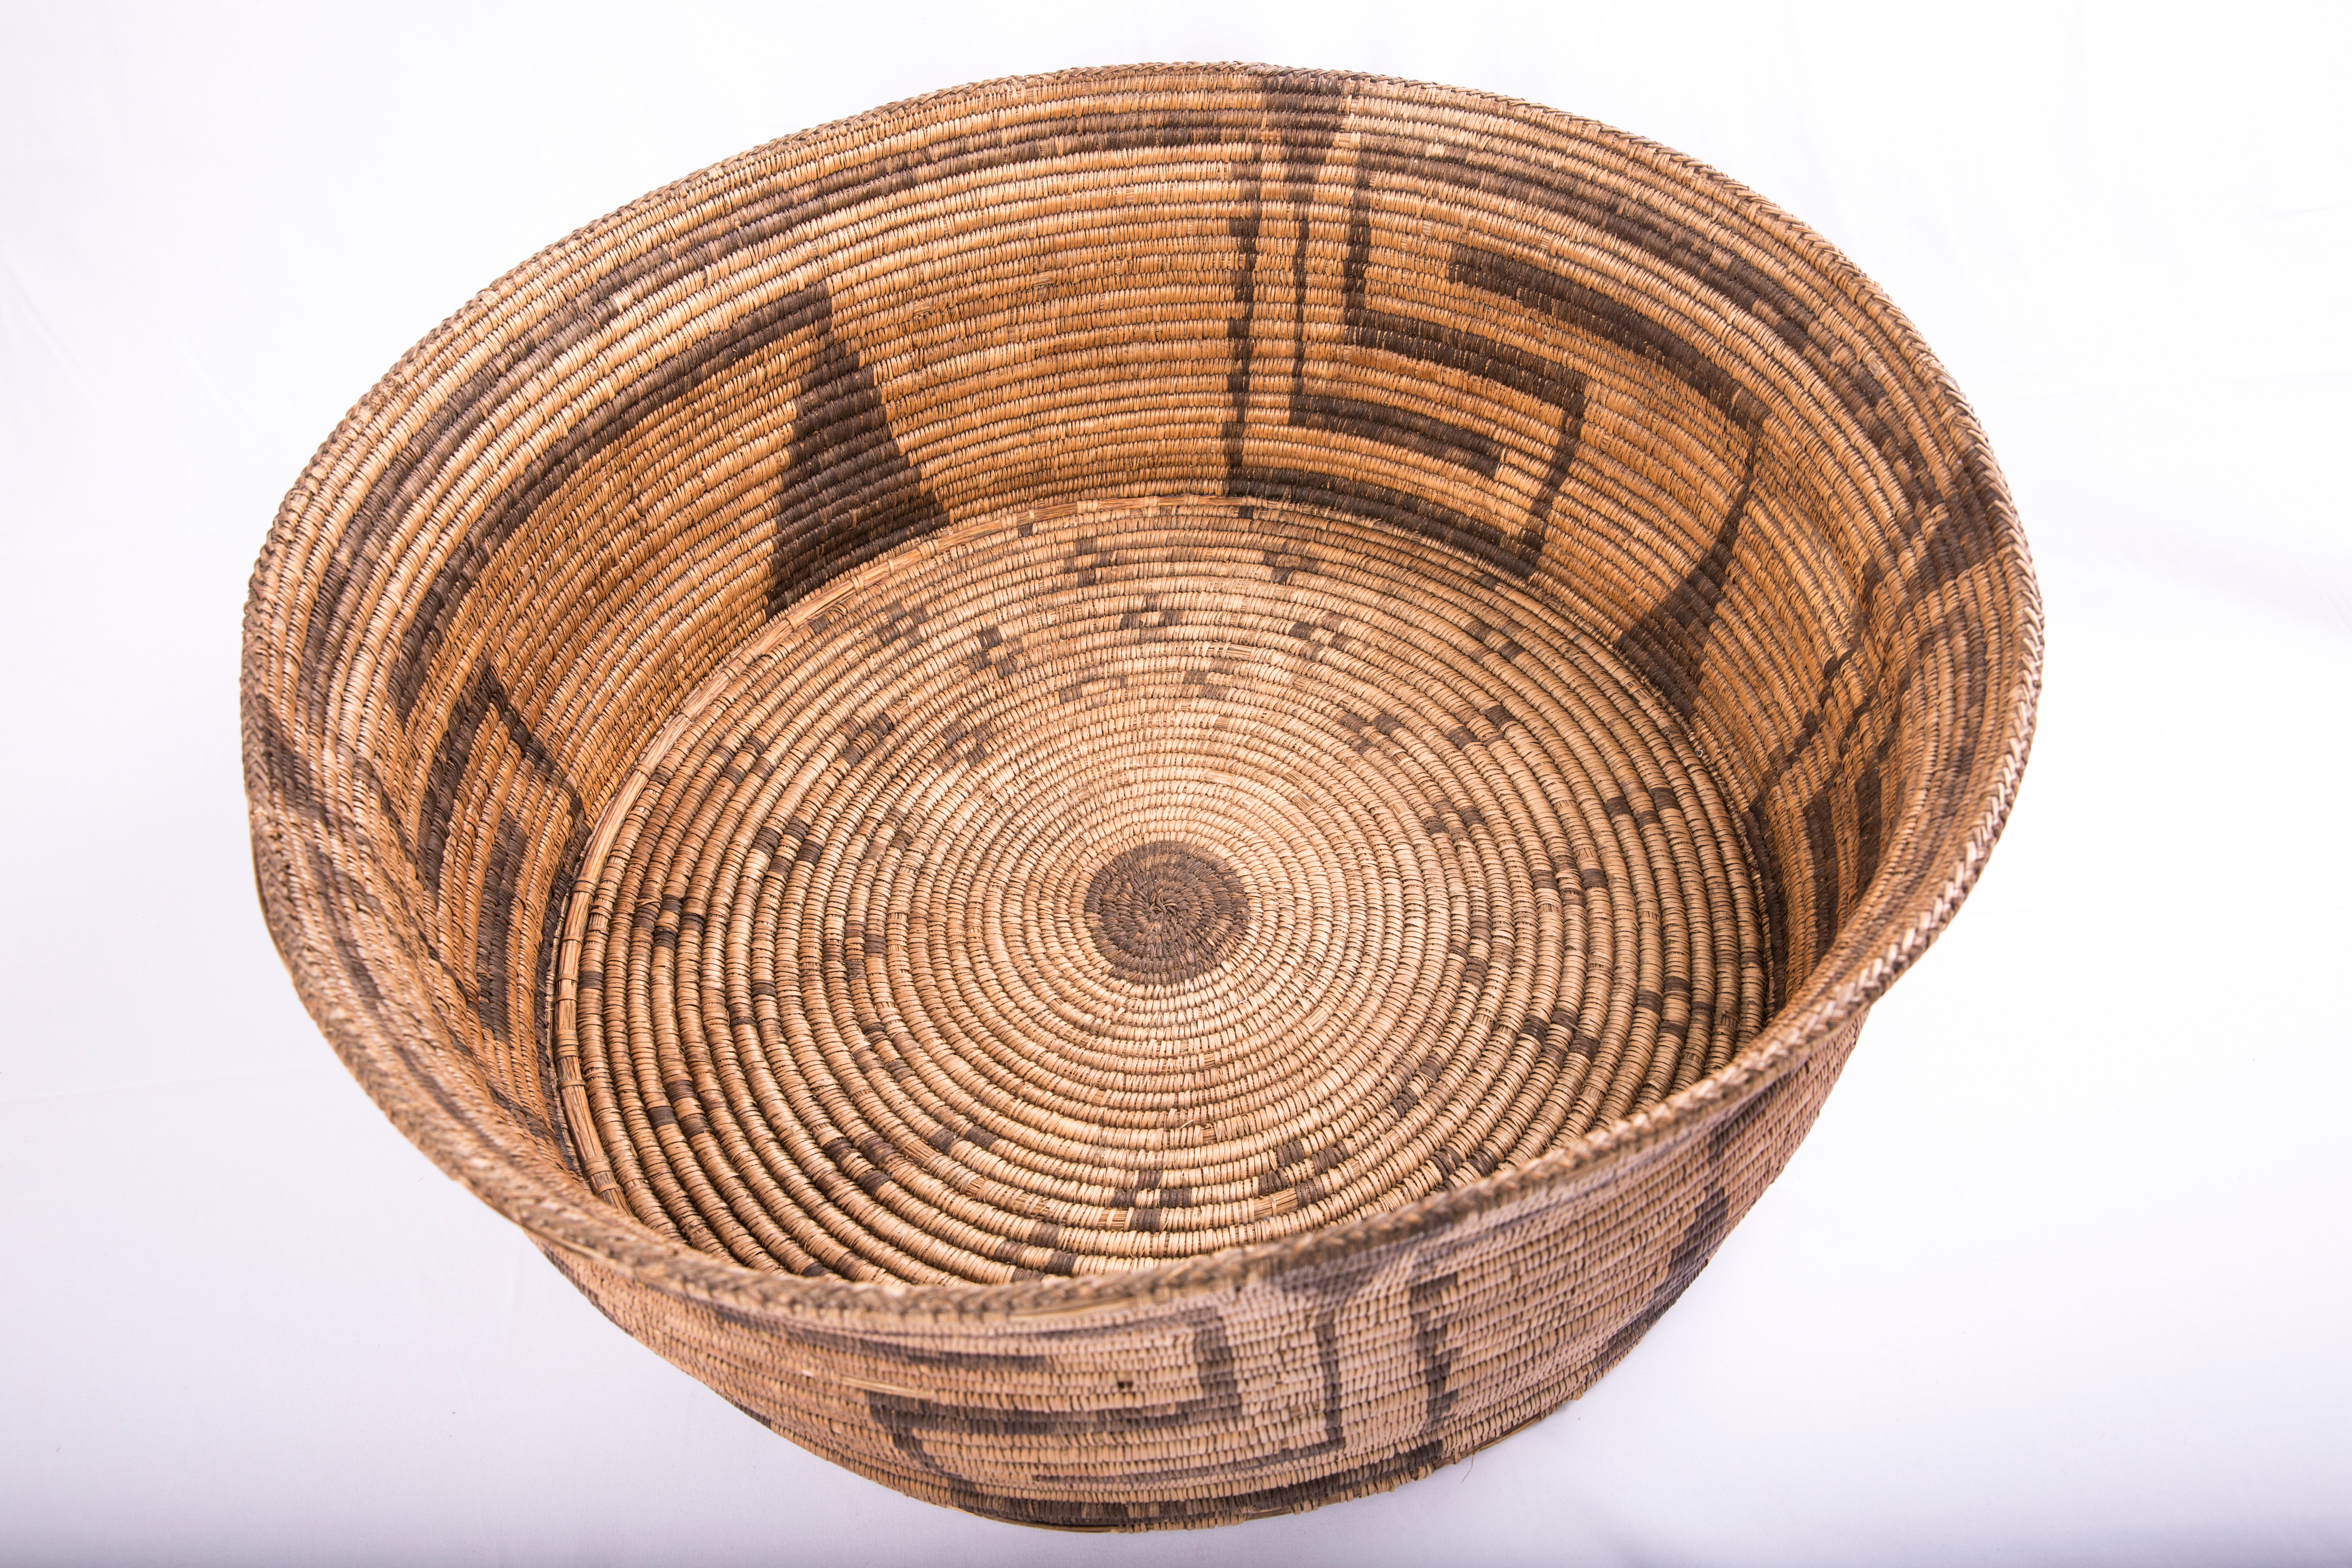 Flat bottomed basket with geometric pattern running along the sides